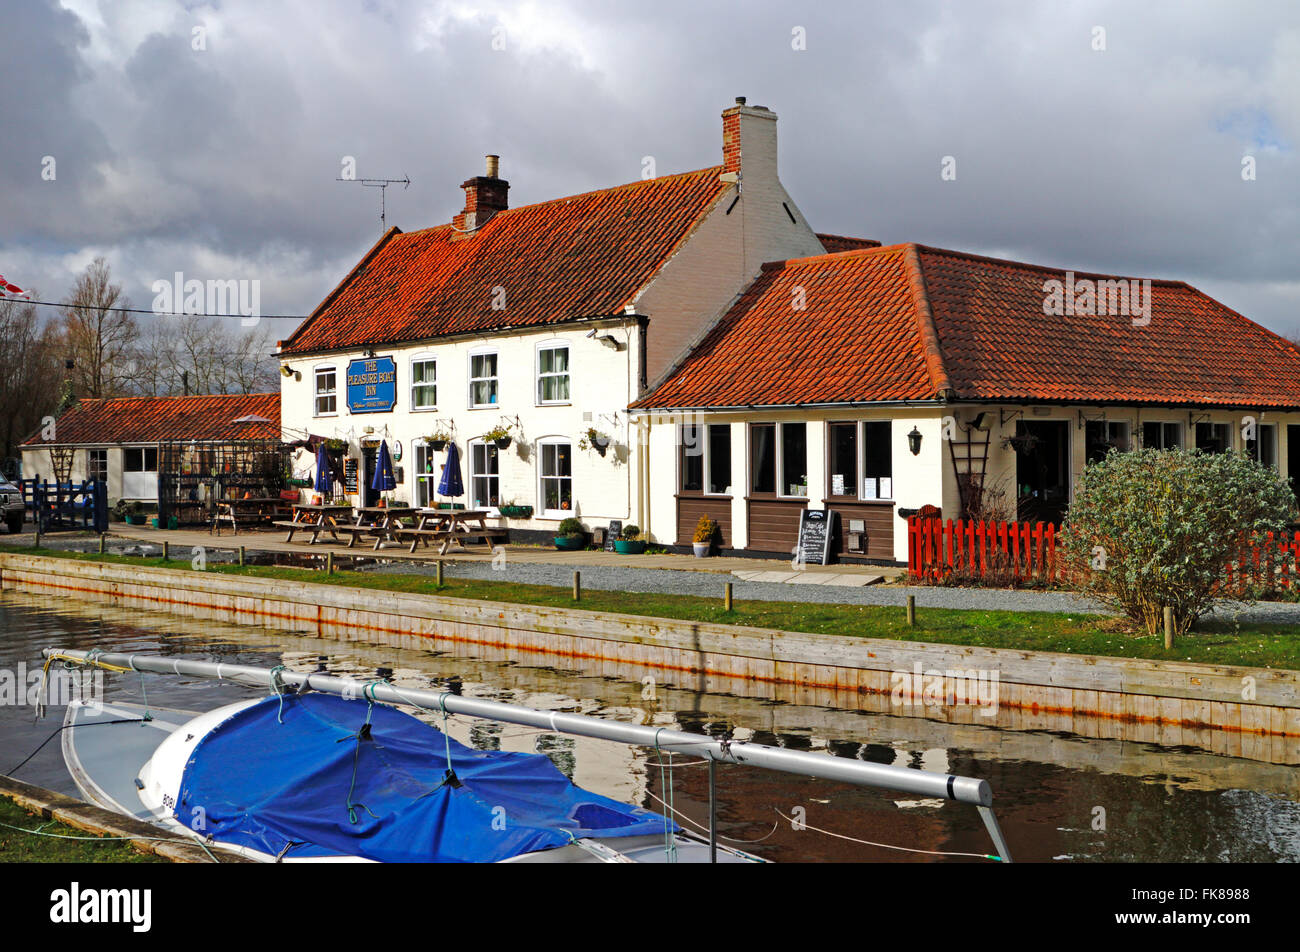 A view of the Pleasure Boat Inn on the Norfolk Broads at Hickling, Norfolk, England, United Kingdom. - Stock Image